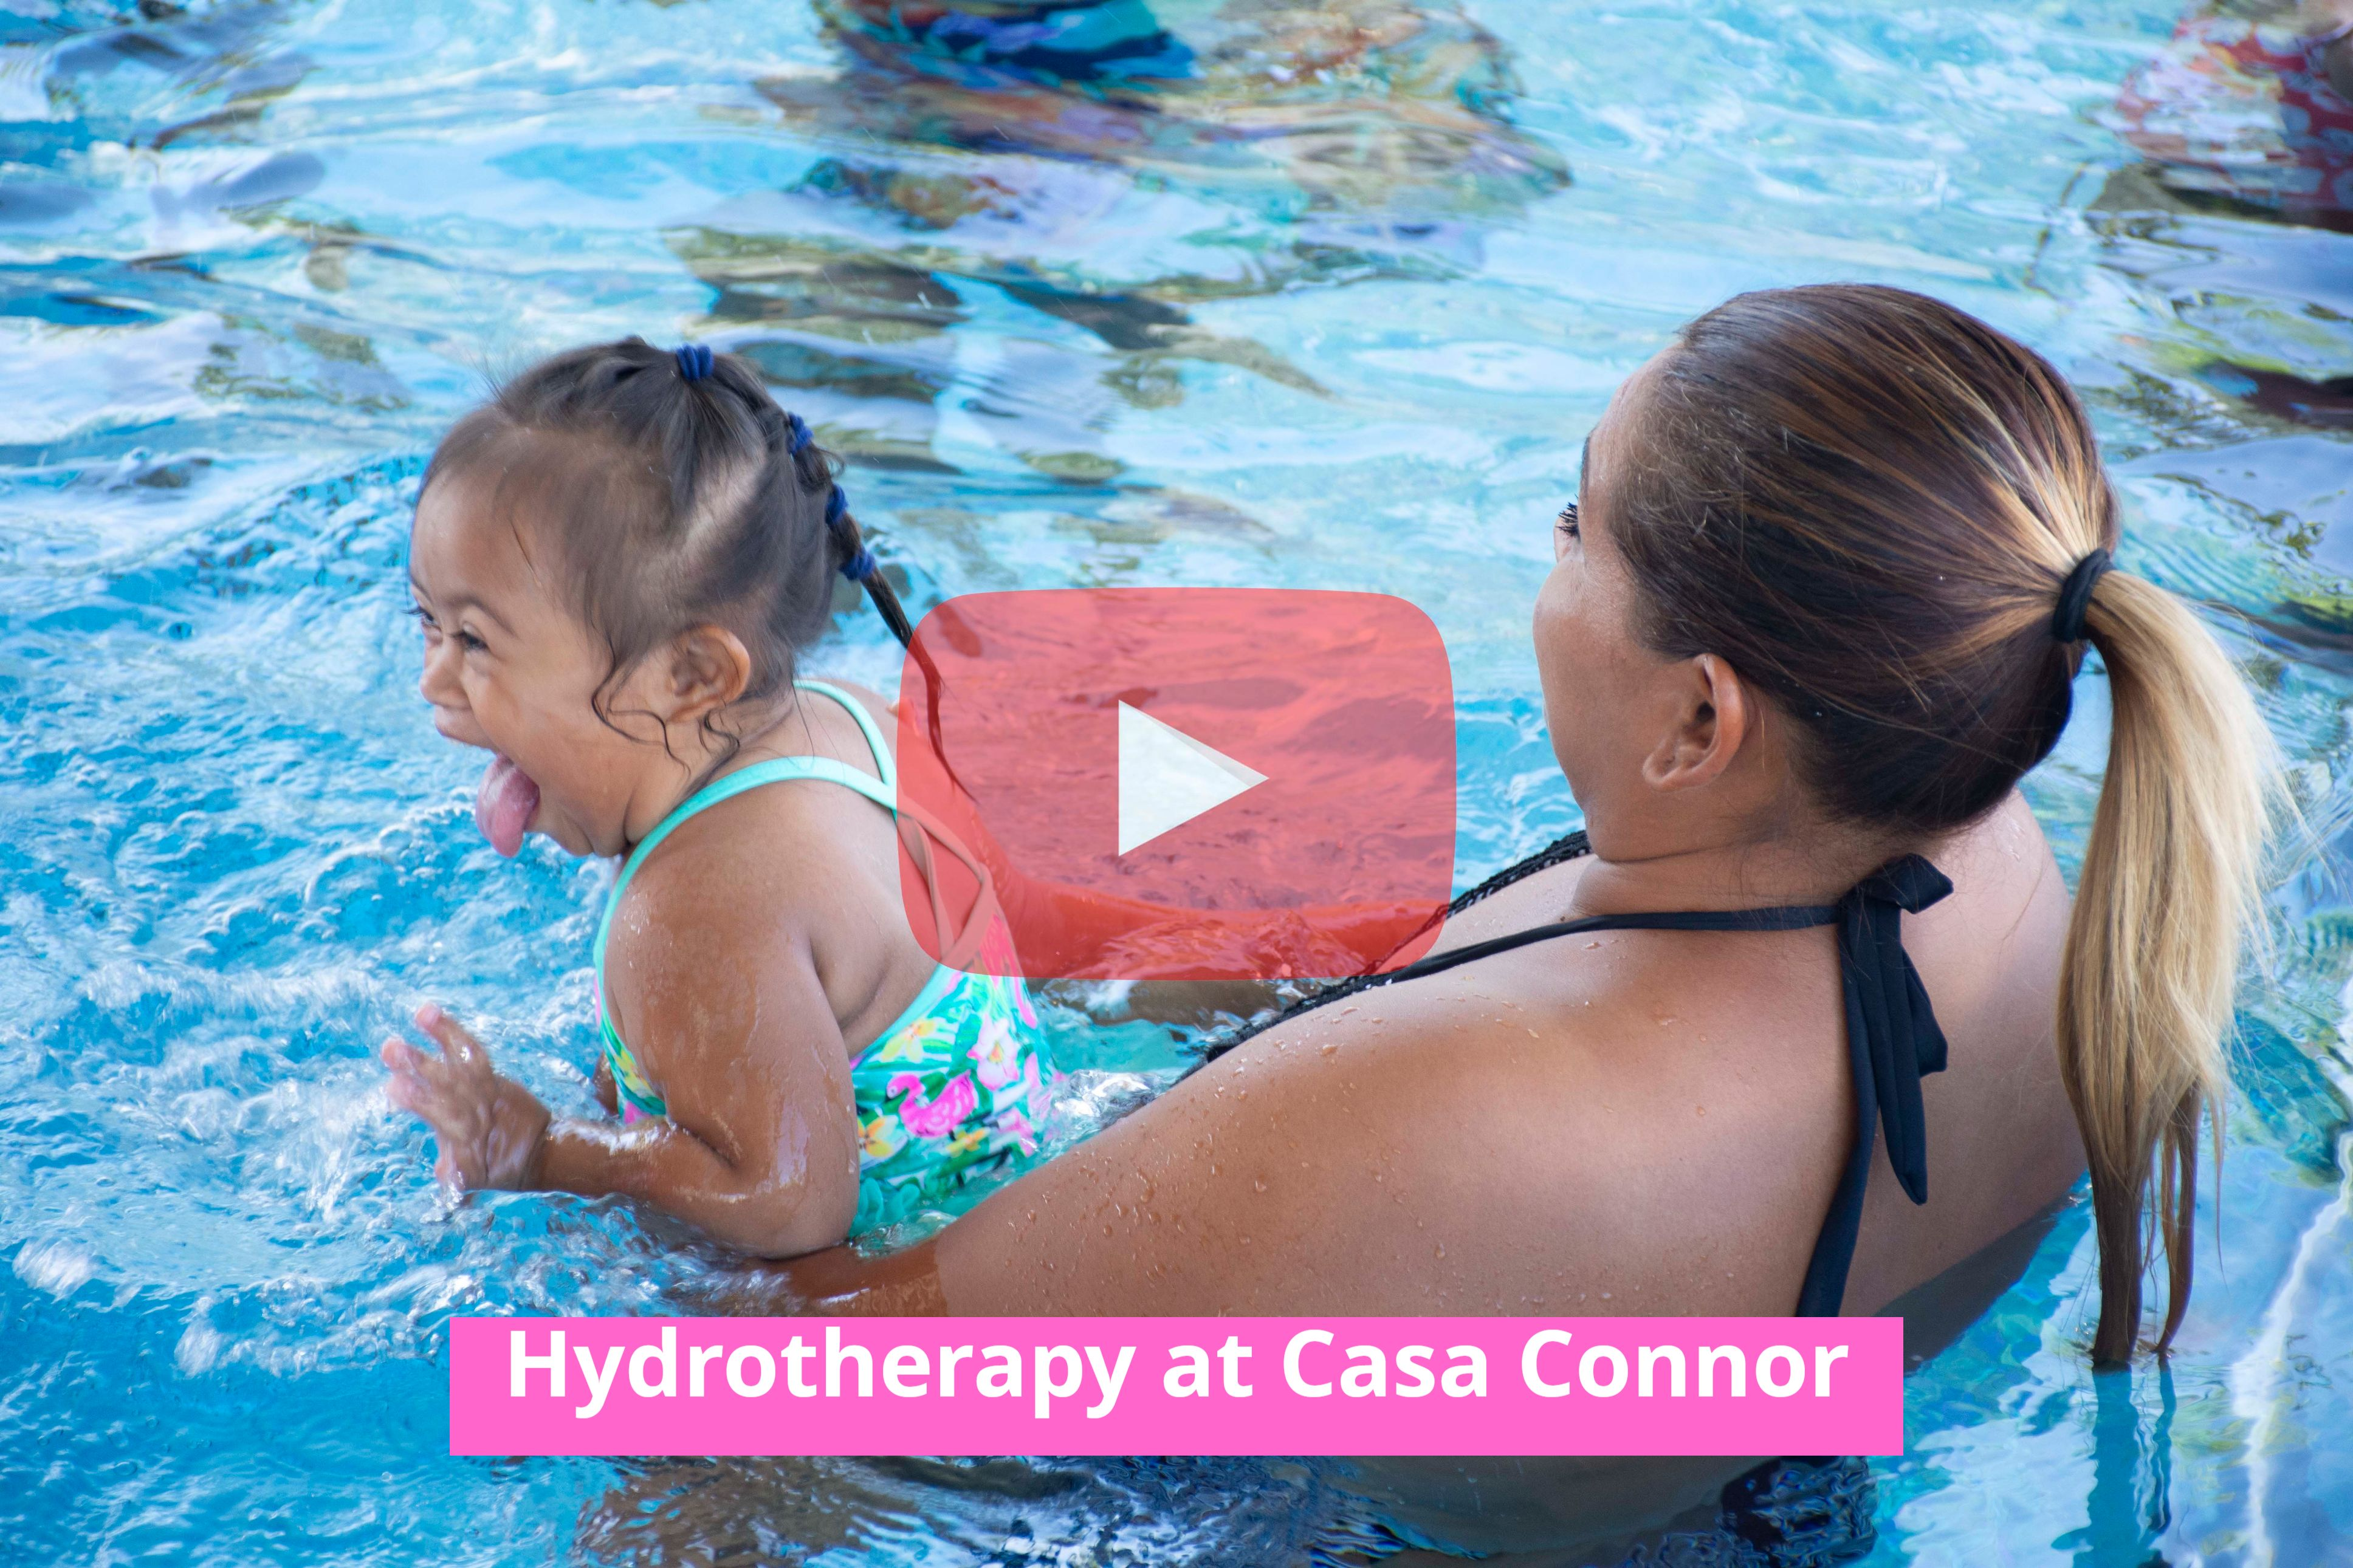 Mia and her mum bond during a hydrotherapy session